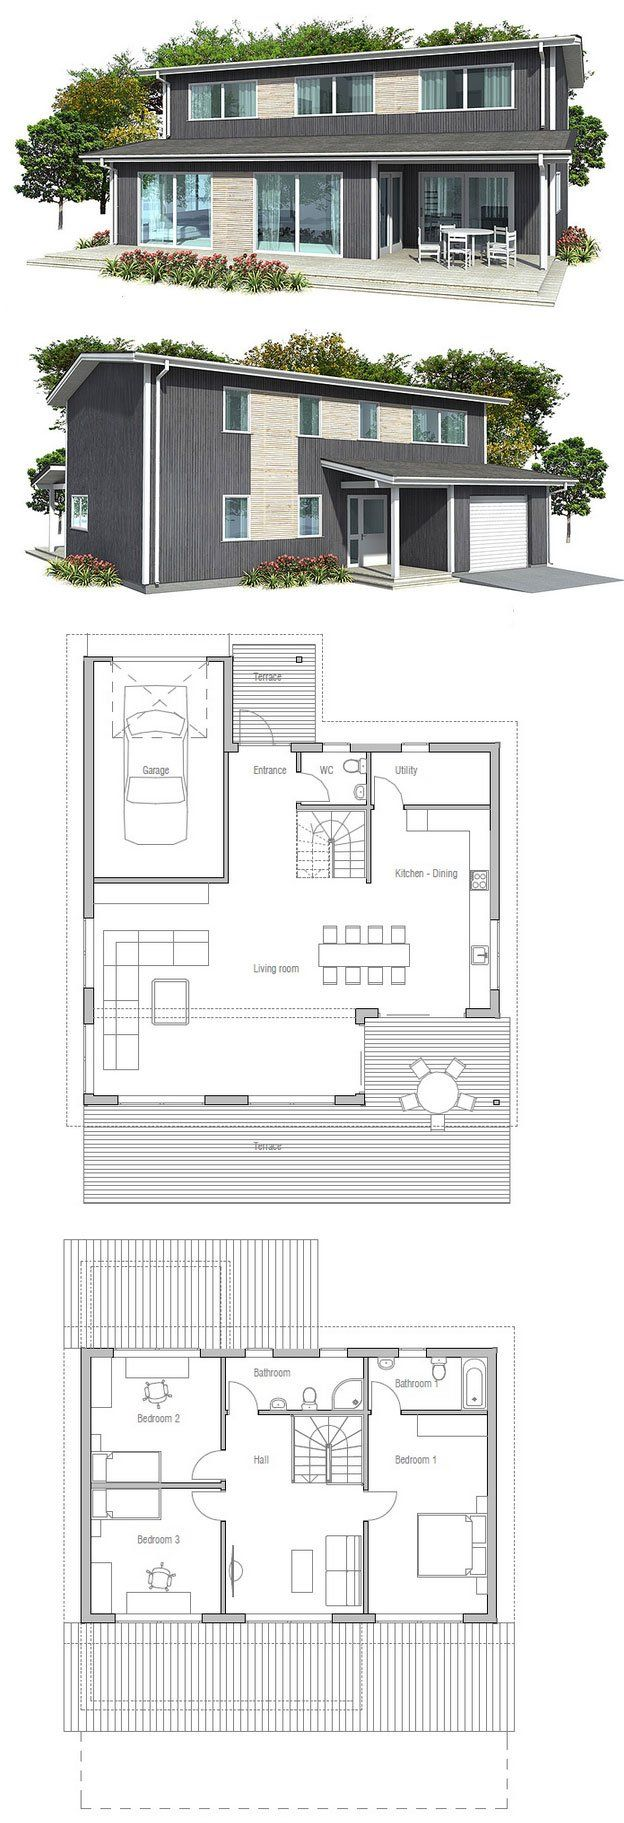 Small house plan, three bedrooms, two living areas, garage, spacious interior, small home design in modern architecture. Floor Plans from ConceptHome.com